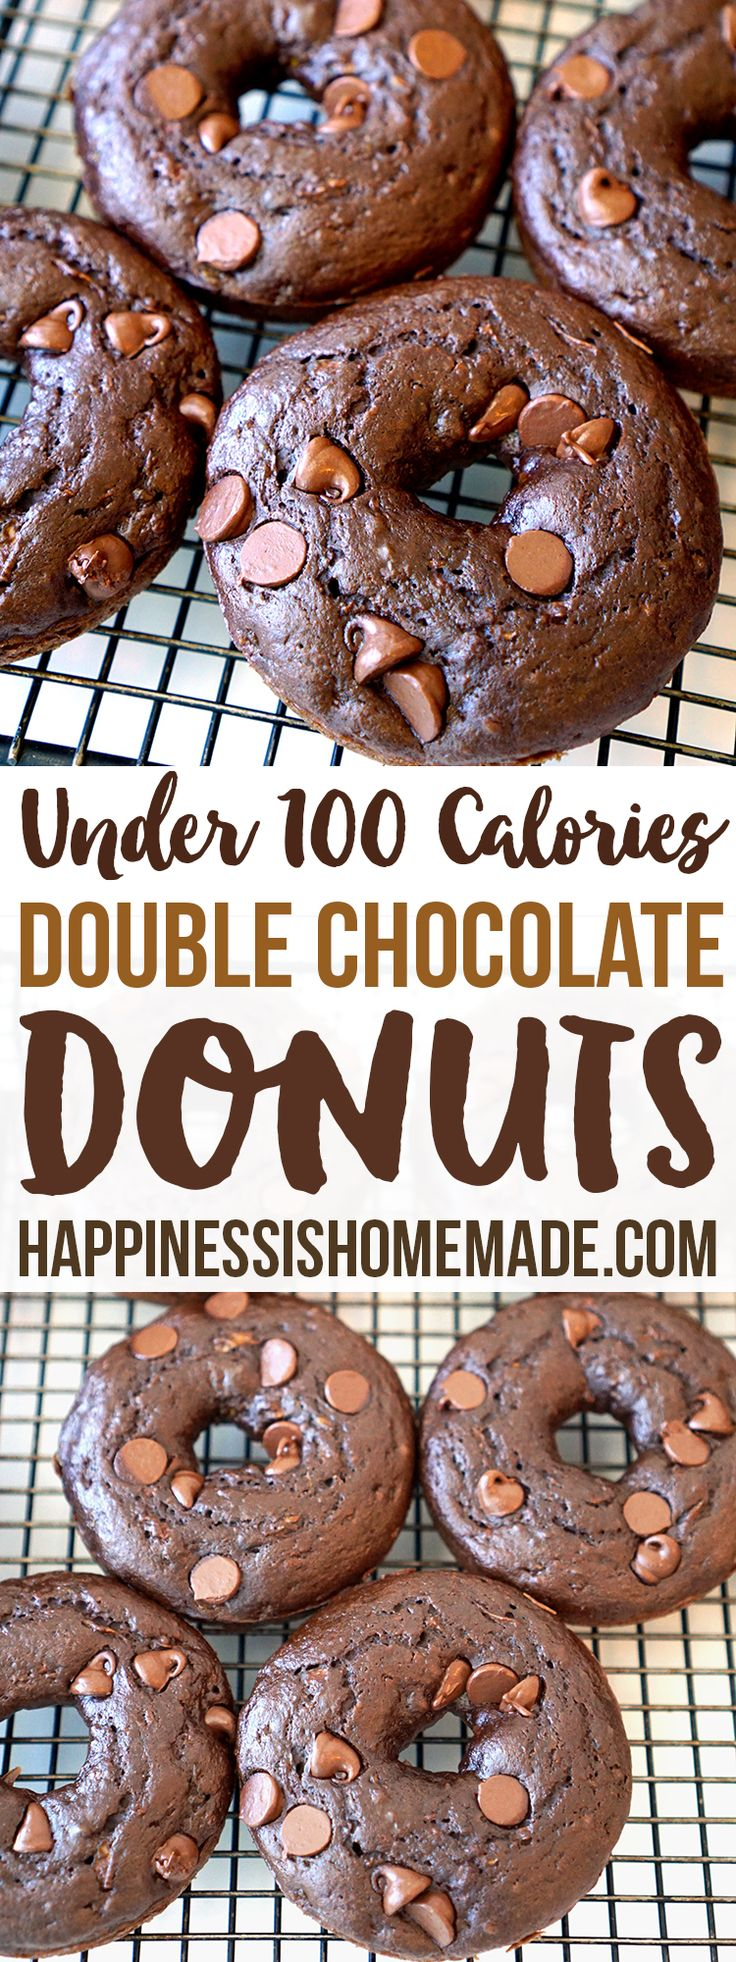 These better-for-you double chocolate zucchini donuts are under 100 calories each! A moist and rich chocolaty indulgence that won't blow your diet!